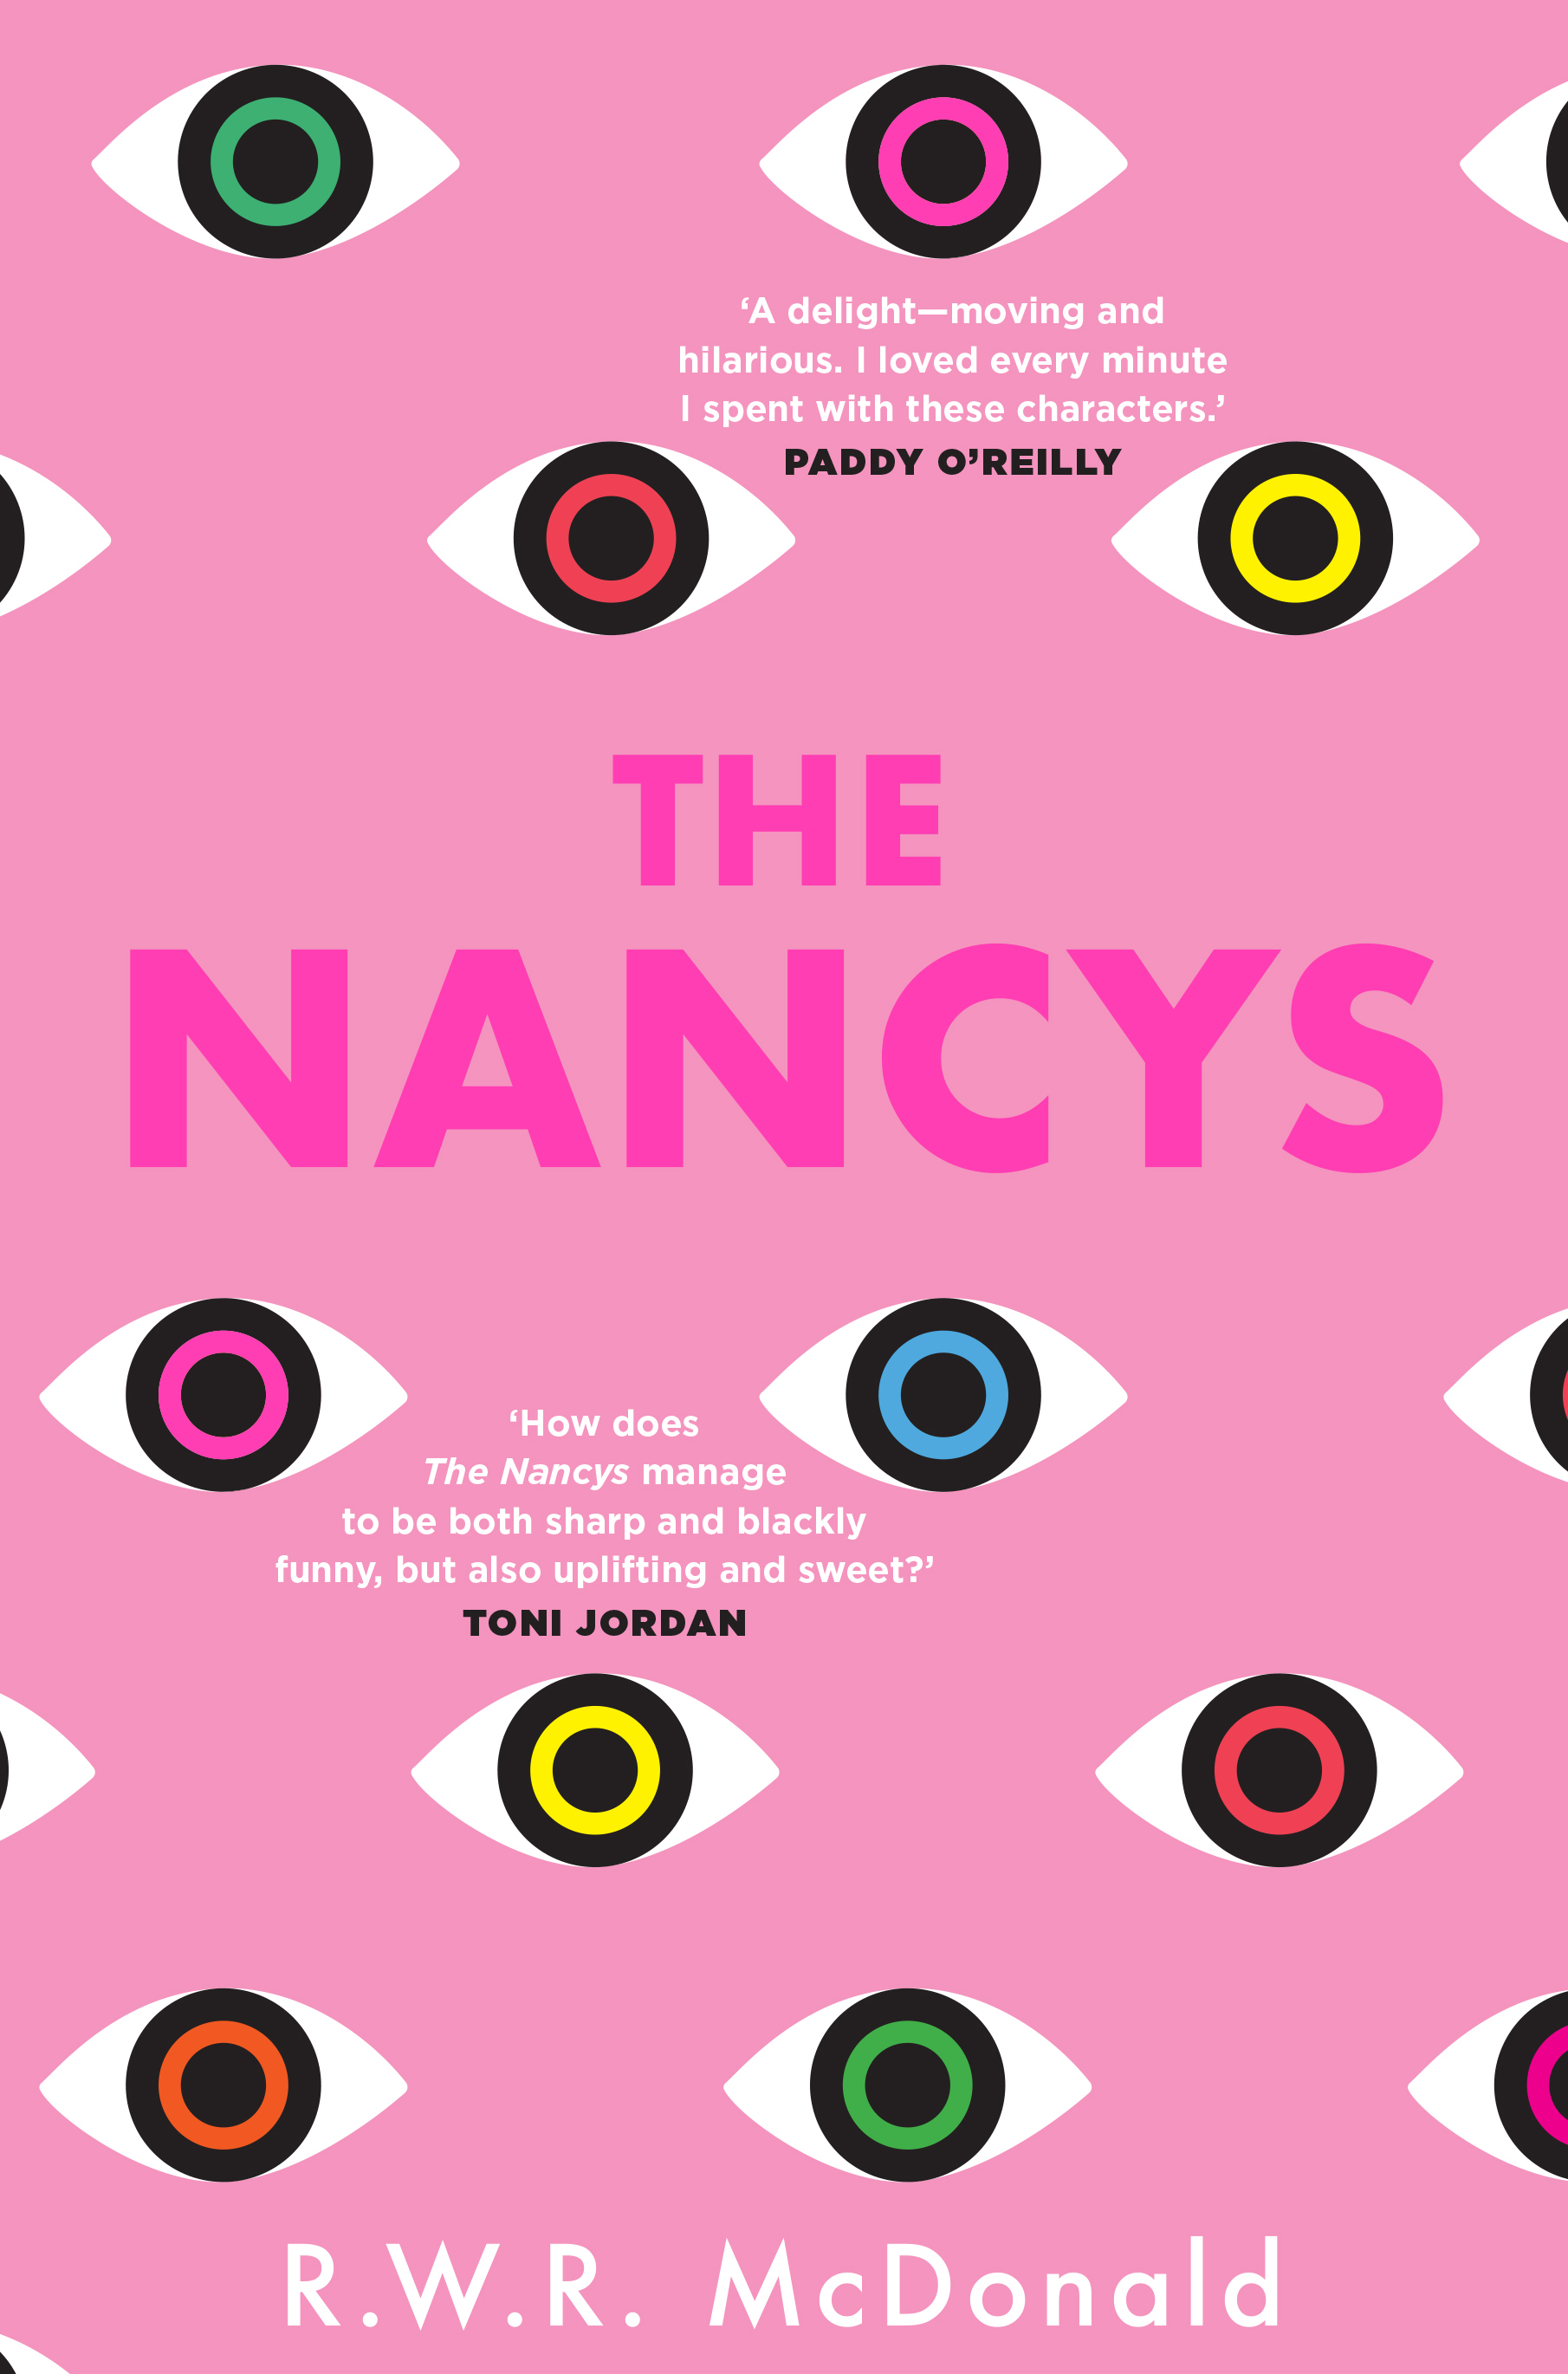 The Nancys pink cover with eyes